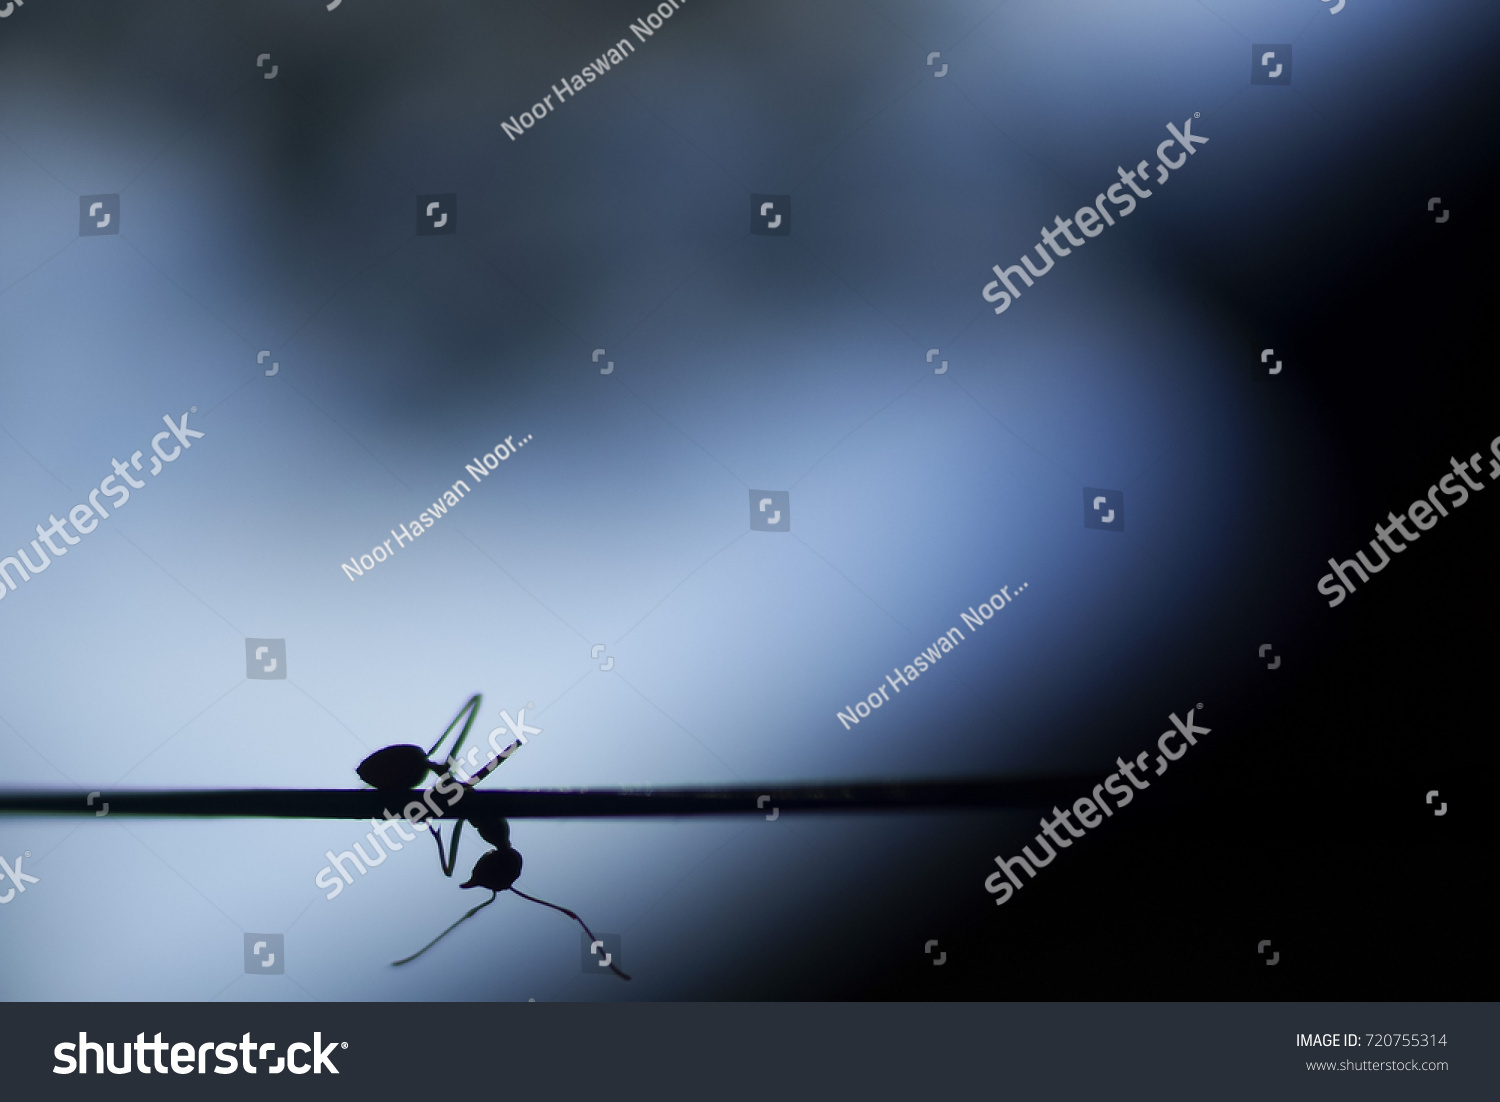 Fire Ants Silhouette Crossing Wire Dark Stock Photo (Royalty Free ...